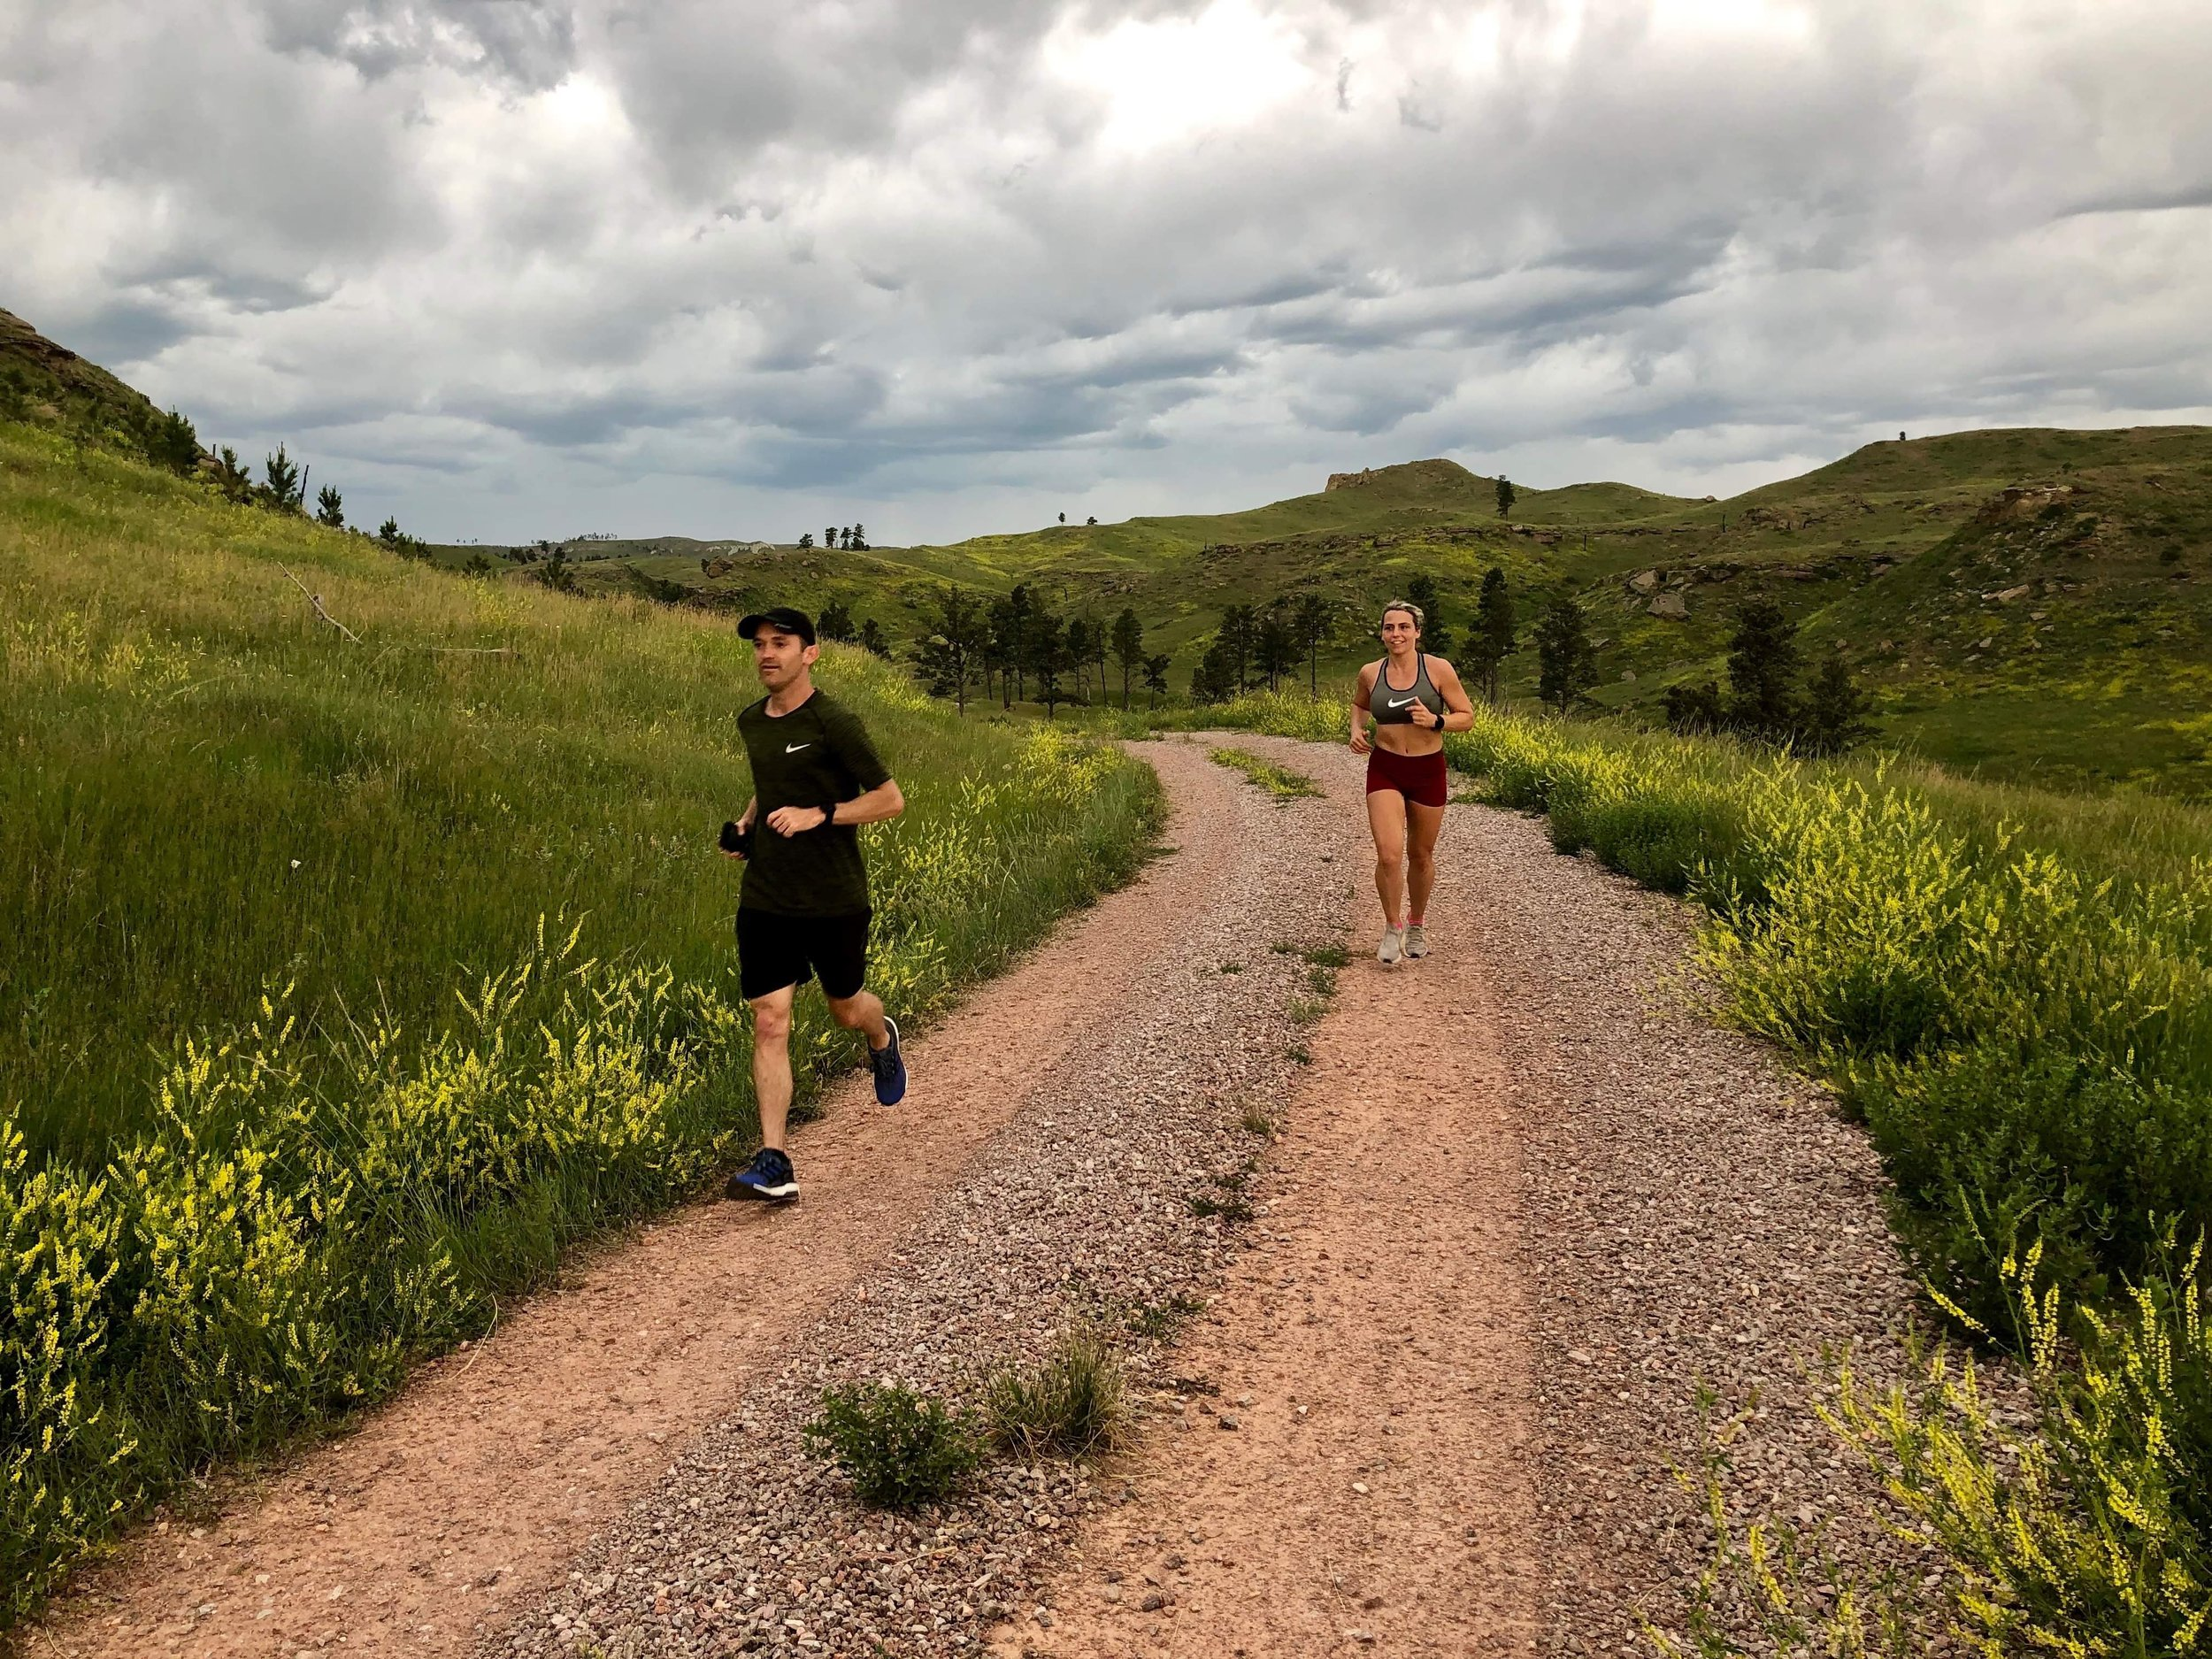 "Racing the thunderstorms in Montana: For years I've been planning the ""50 states 5k"" adventure to break the speed record for visiting all 50 states while also running a 5k in each state. I broke the record for most miles run a week (156.9 miles in 6 days), dealt with excessive heat, massive sleep deprivation and the stress of nearly having the whole trip blow up in my face over cancelled flights to the starting line. But in the end, it was executed in spite of obstacles and the dream was realized. This photo encapsultes the entire experiece. The storms were coming but we always fought to stay ahead of them."